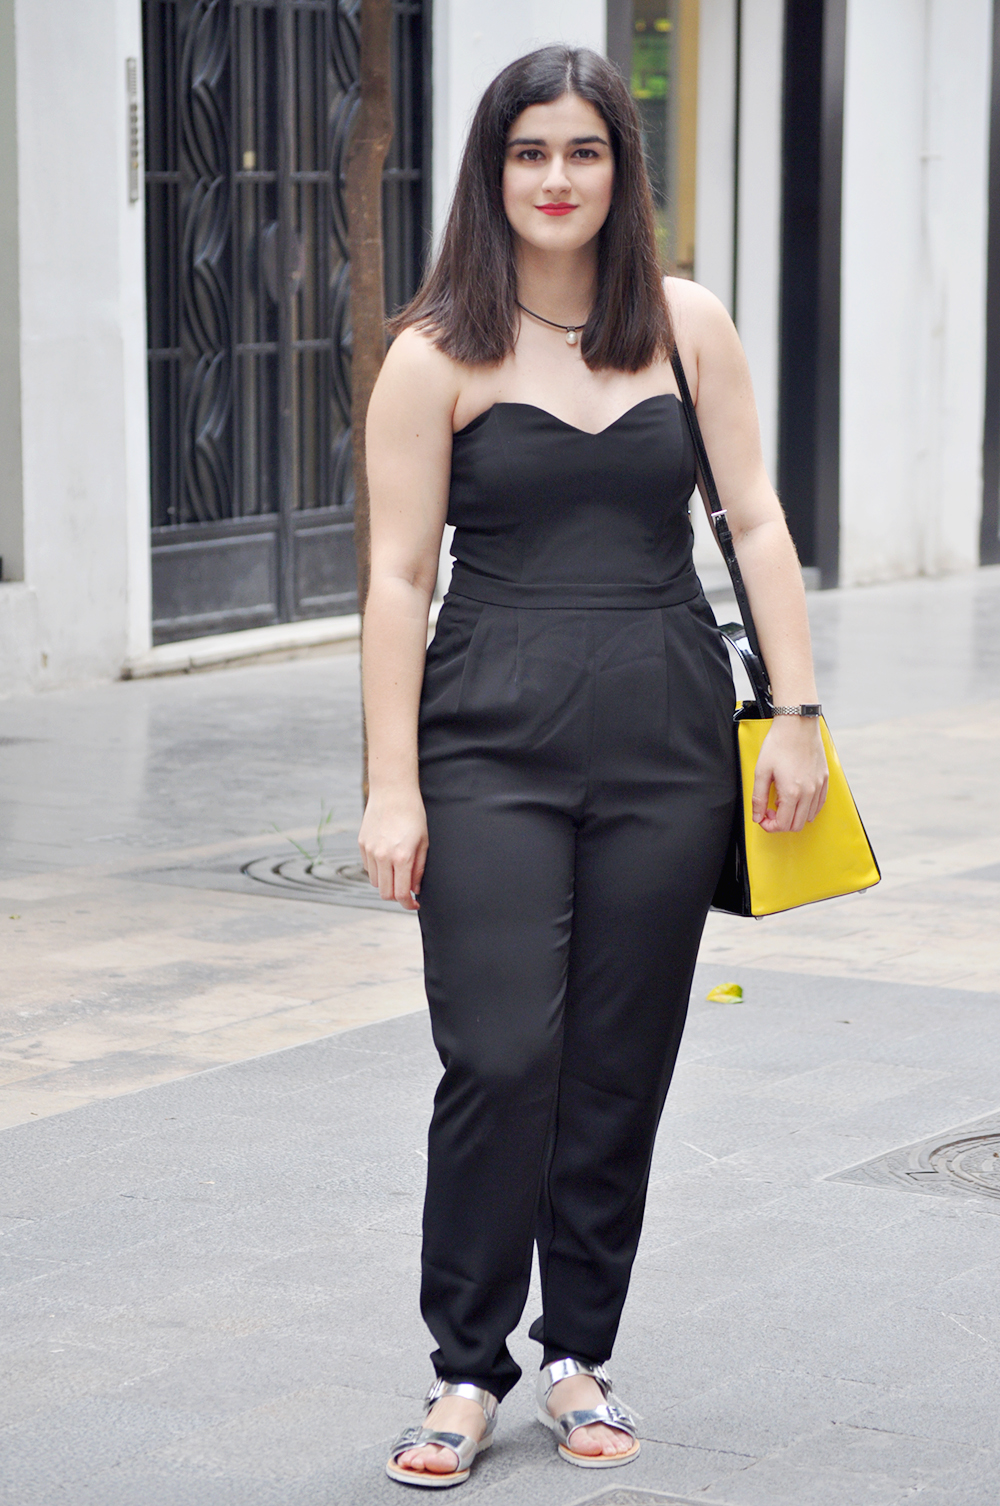 something fashion blogger, valenciablogger, ugly shoes how to style black jumpsuit, outfit inspiration total black prada, short hair brunette sweetheart spazzolo bag statement, valencia moda blogger